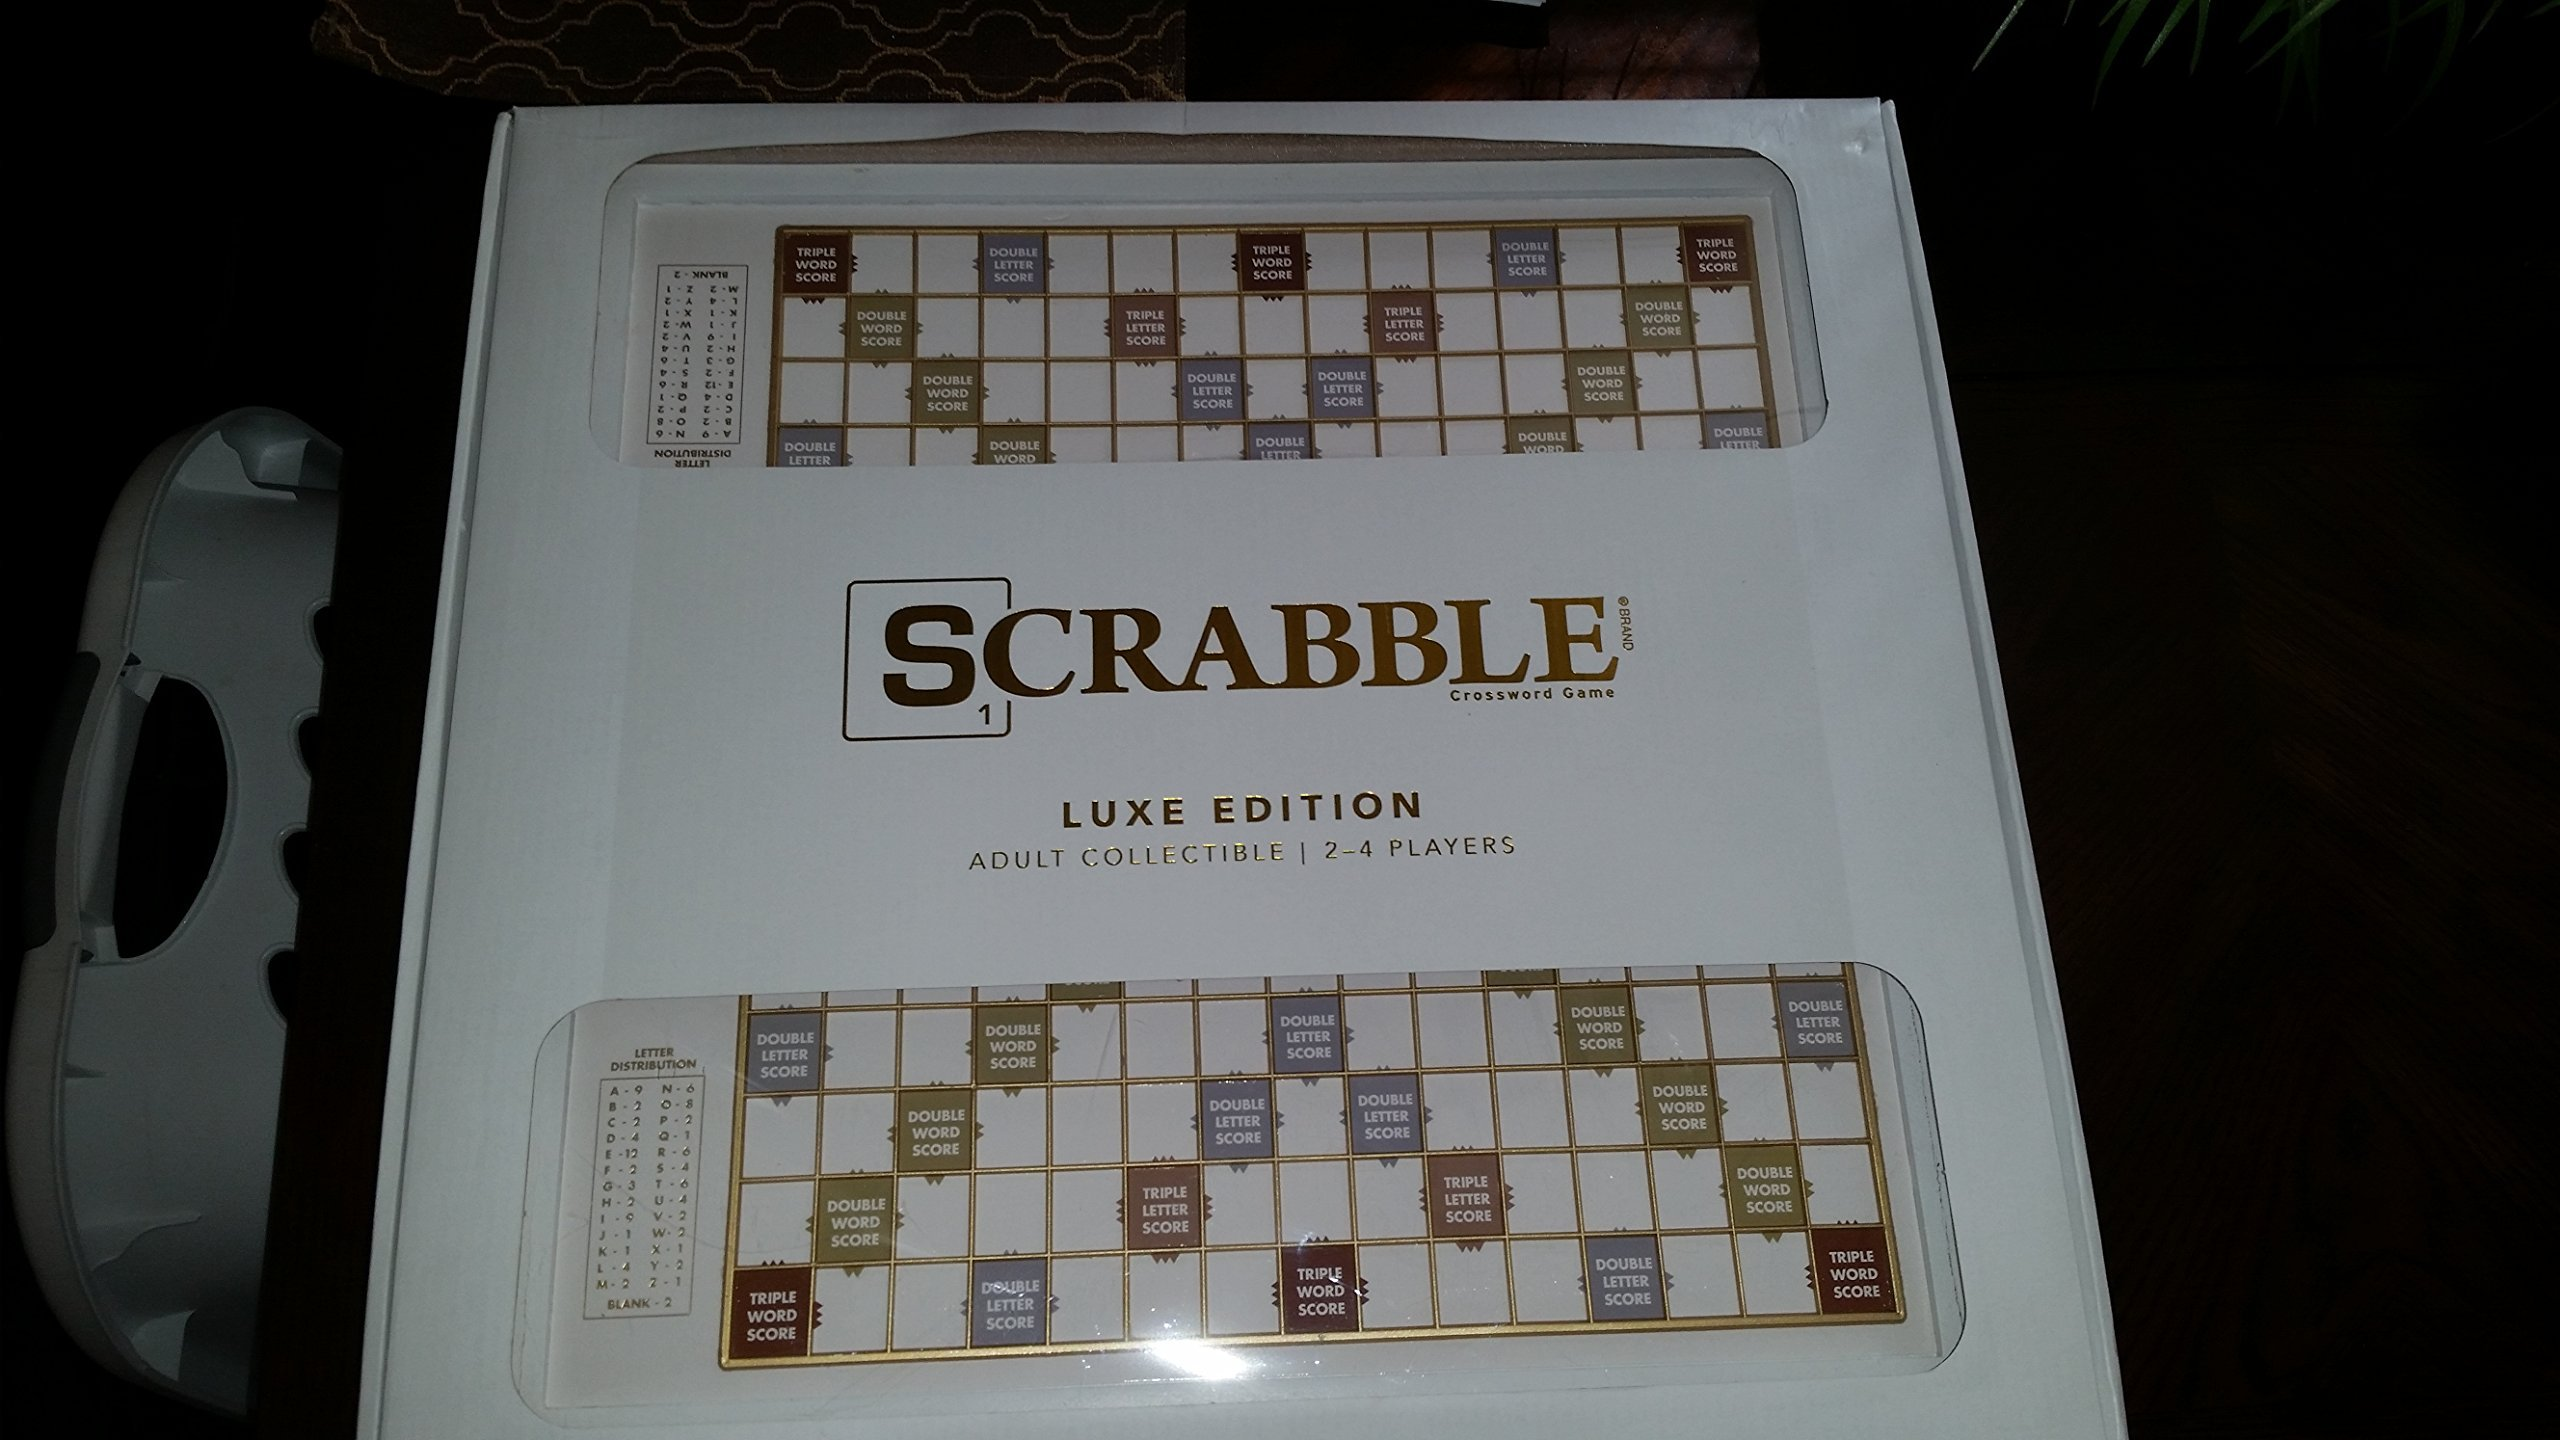 Scrabble Luxe Collectors Board Game - White and Gold Foil Game Board with White Wooden Cabinet